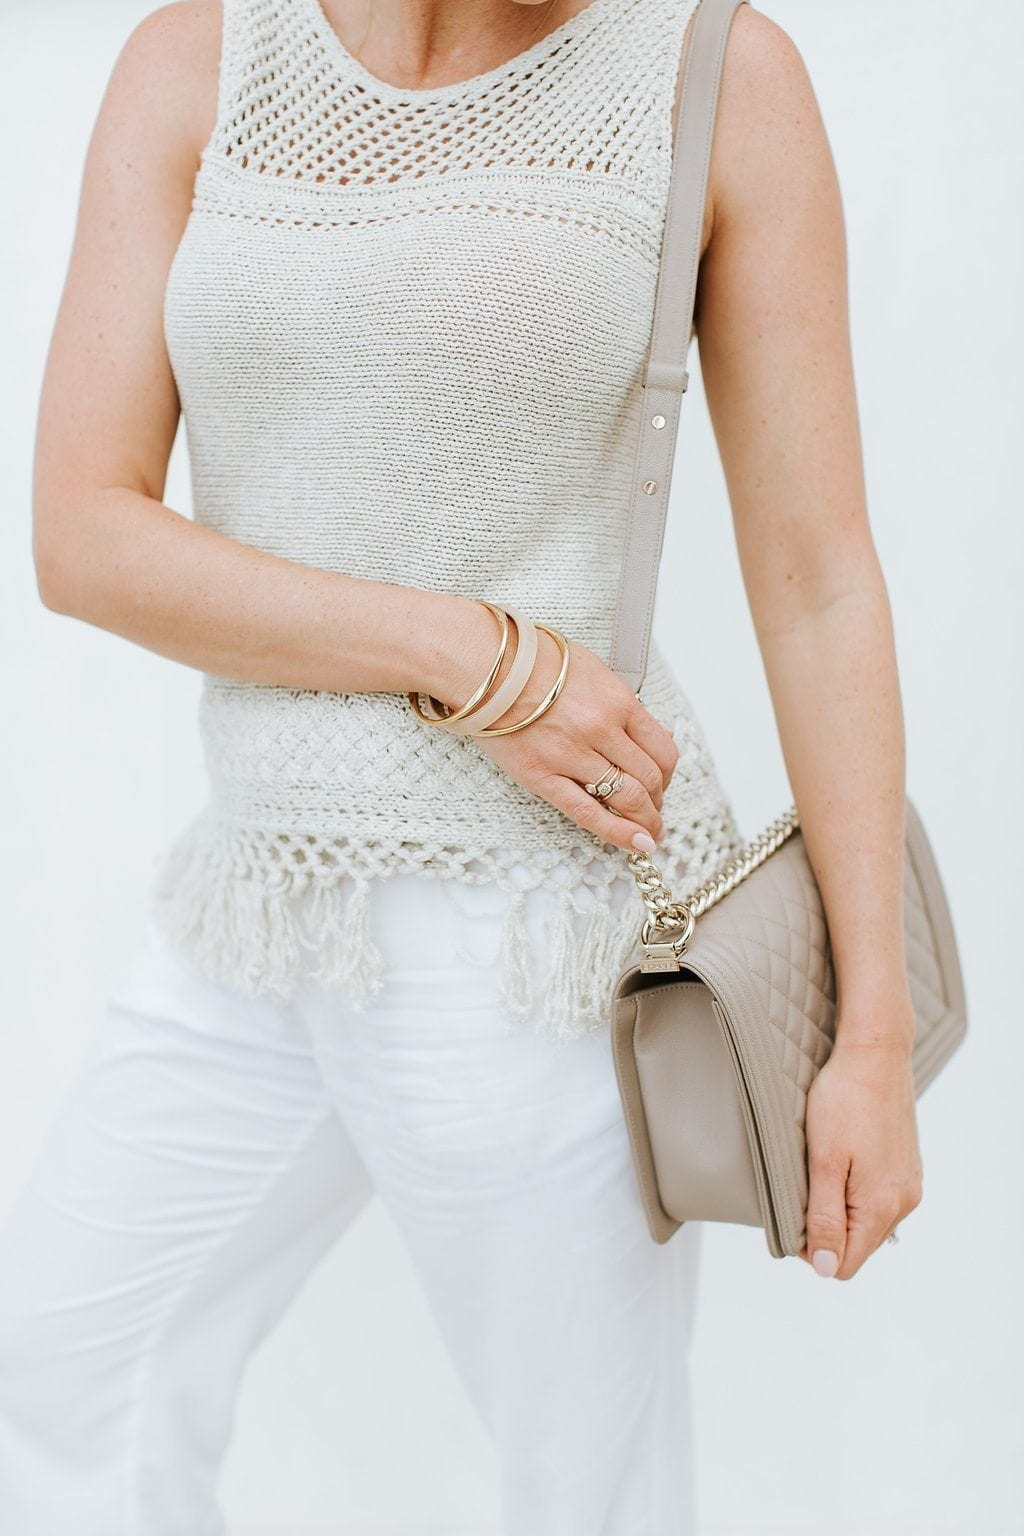 A not so basic sweater! Gold fringe sweater with neutral Chanel Boy bag and gold and nude bangle bracelets. White and gold summer outfit for family photos.